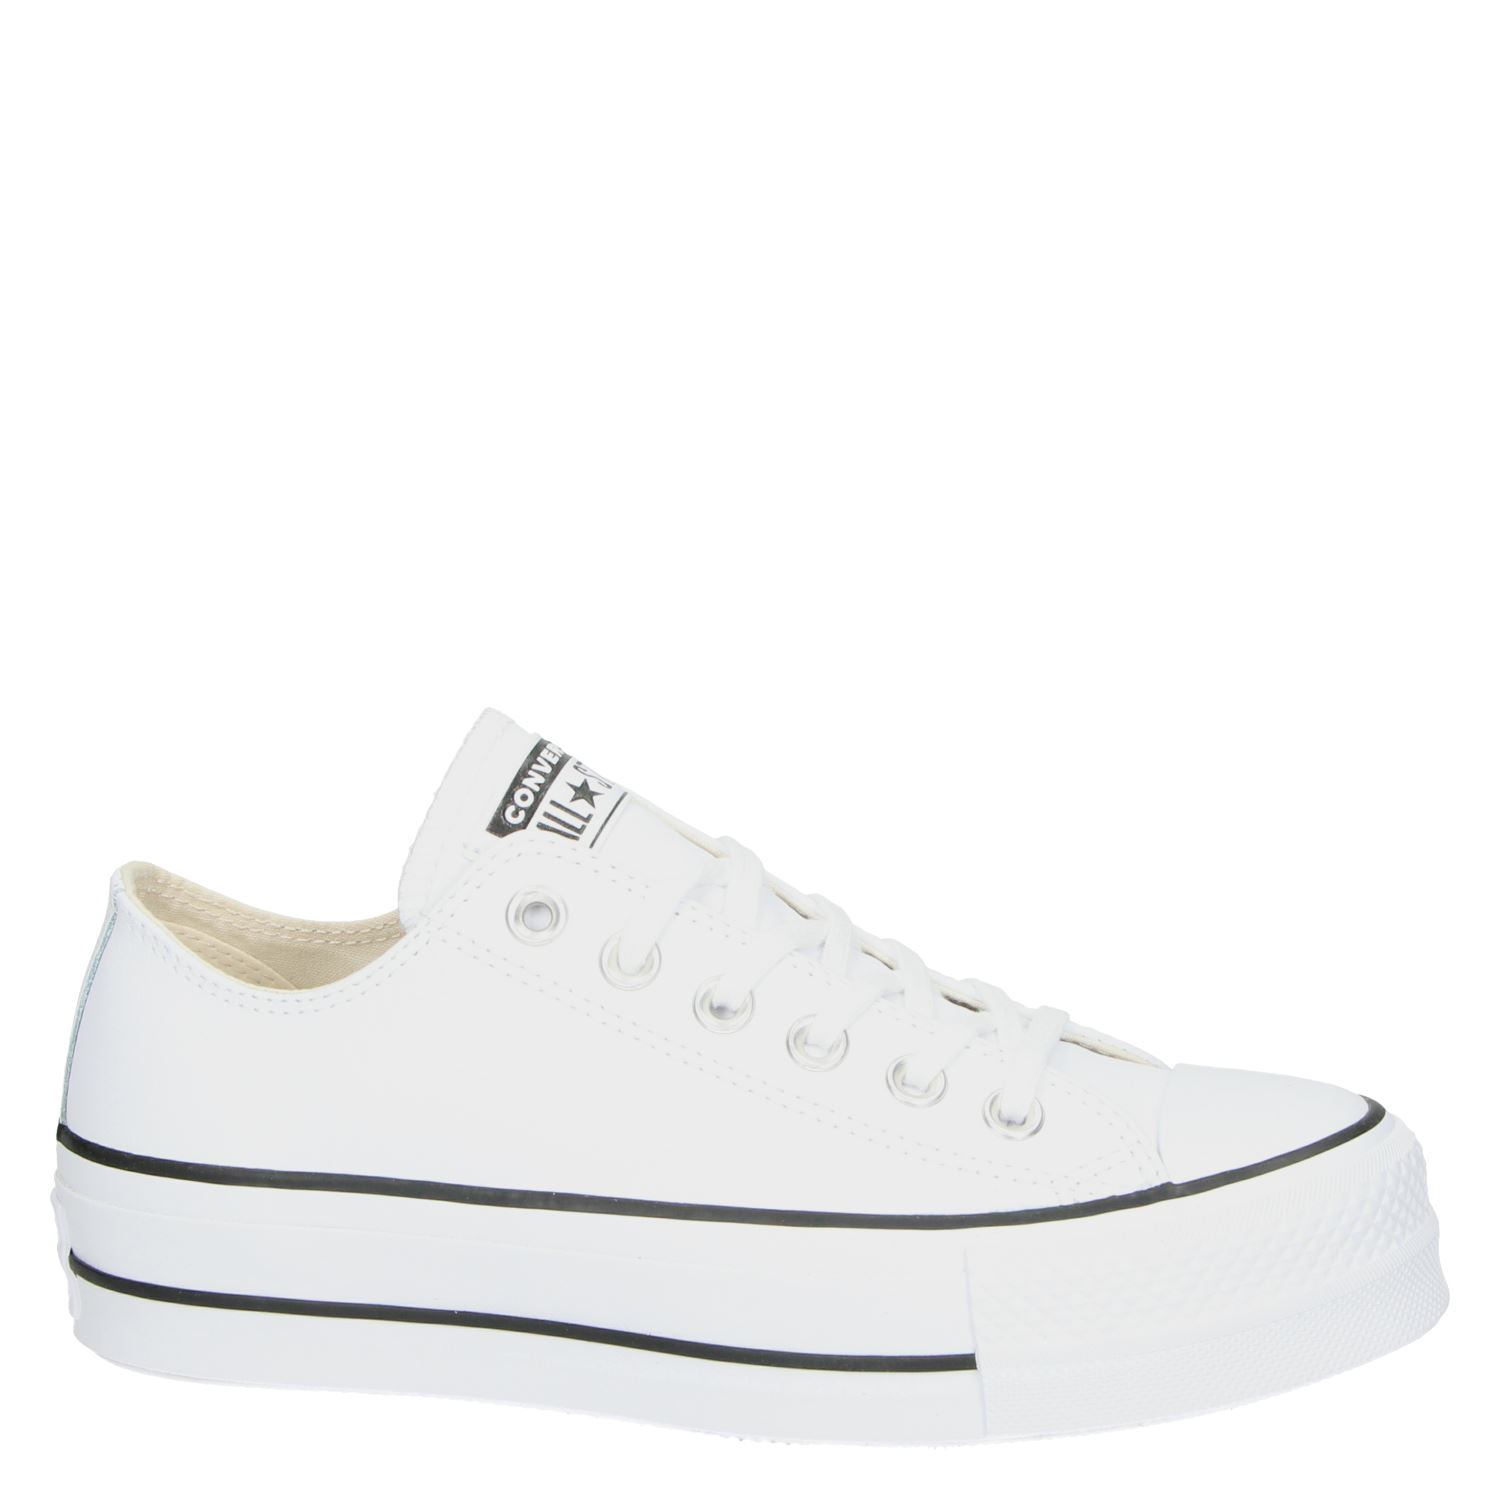 platform converse wit leer coupon code for 6b316 8fa2a